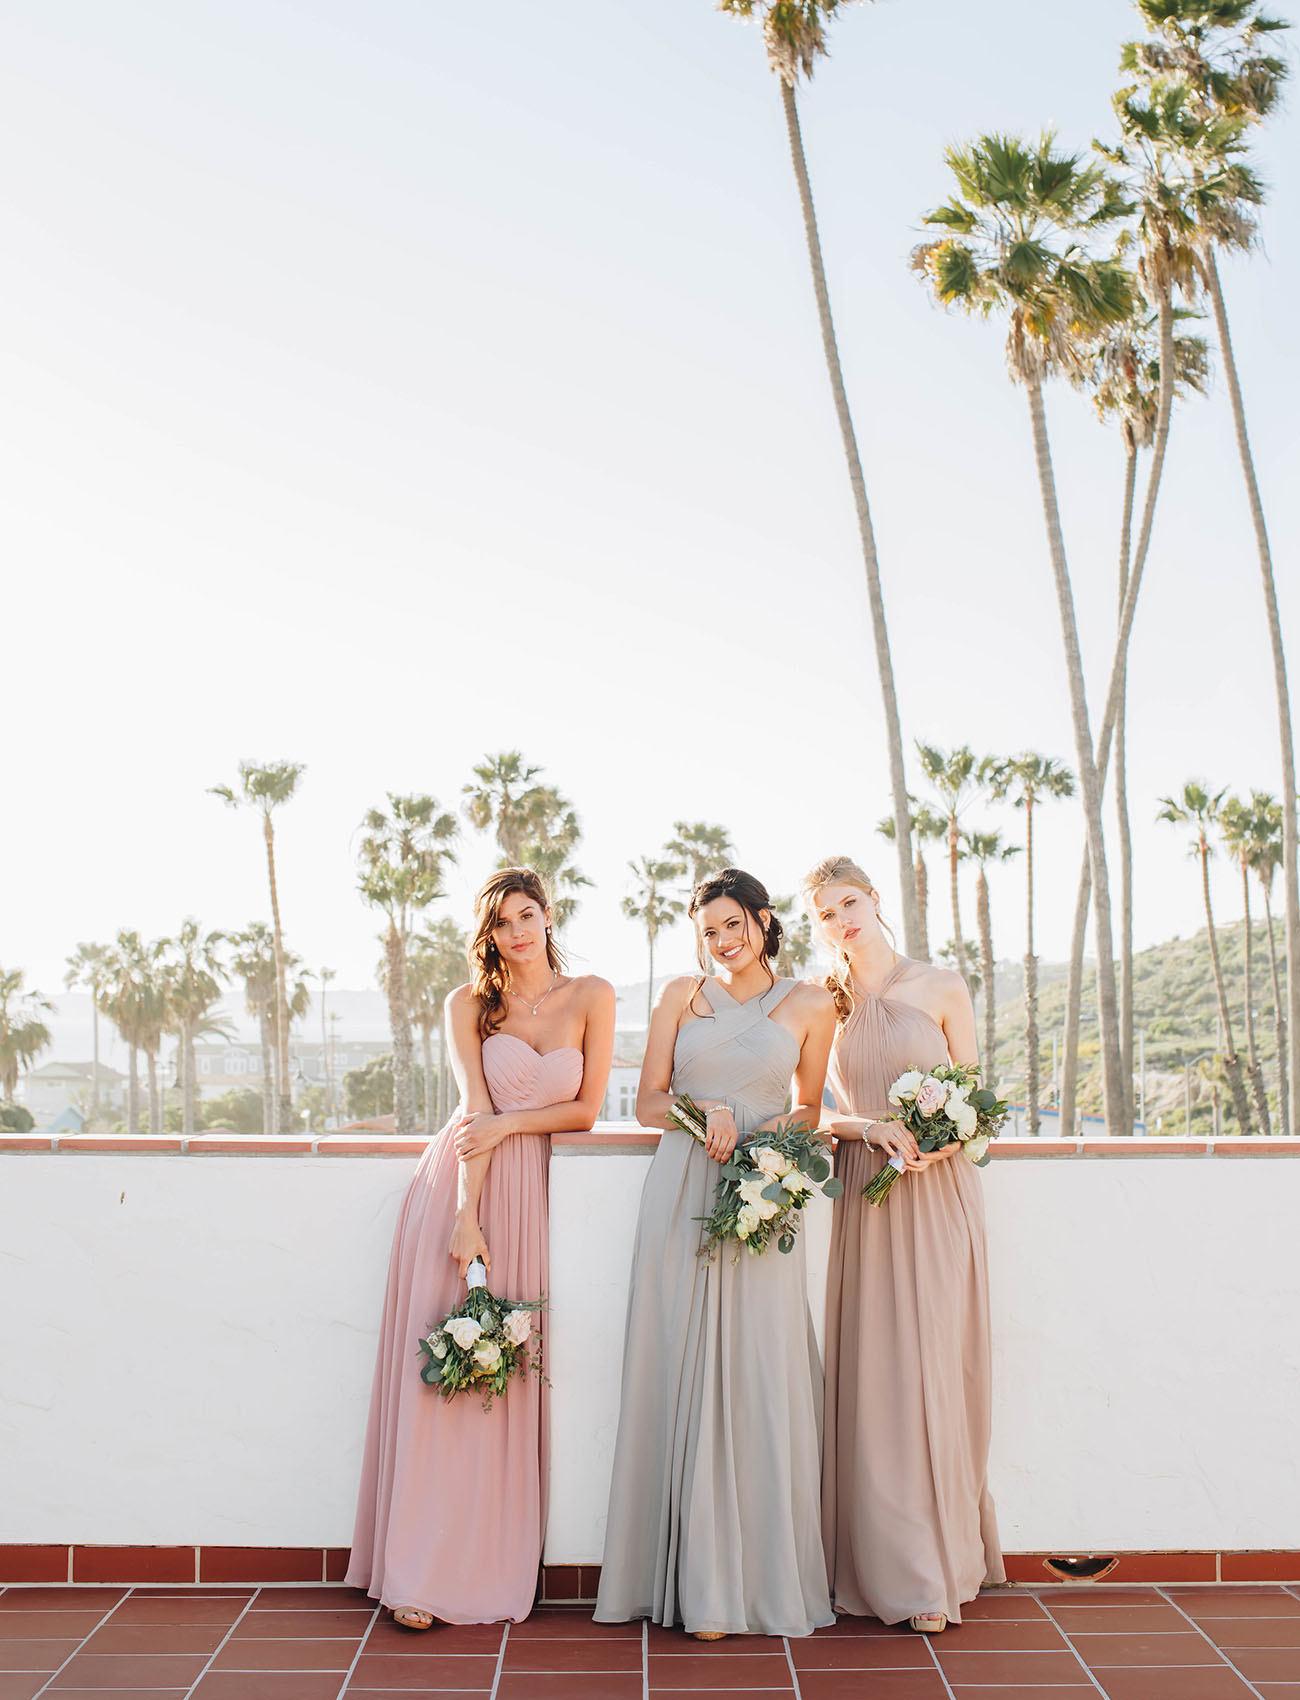 279615c7180 Dreamy Dresses for the Bride + Bridesmaids from Azazie - Green ...